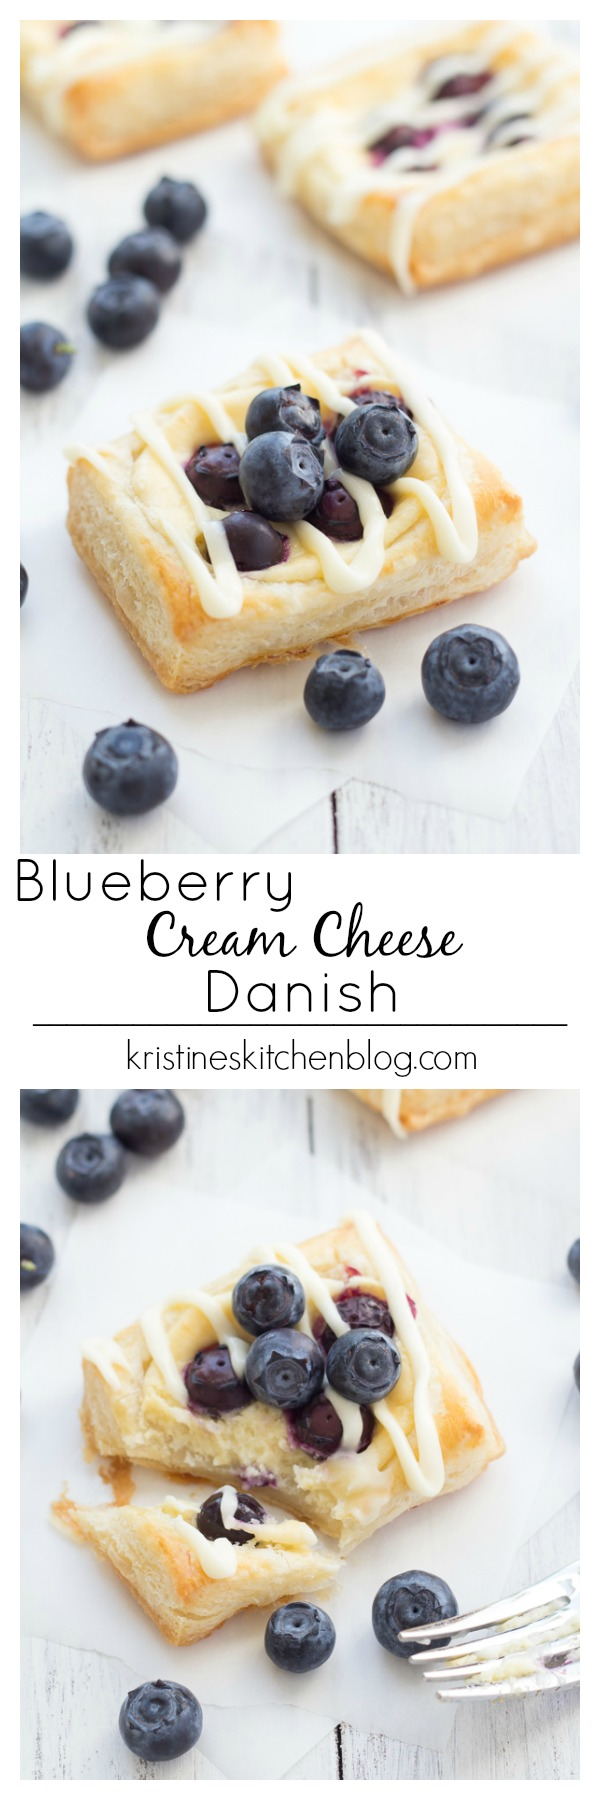 Blueberry Cream Cheese Danish - easy to make with puff pastry and a Greek yogurt and cream cheese filling!